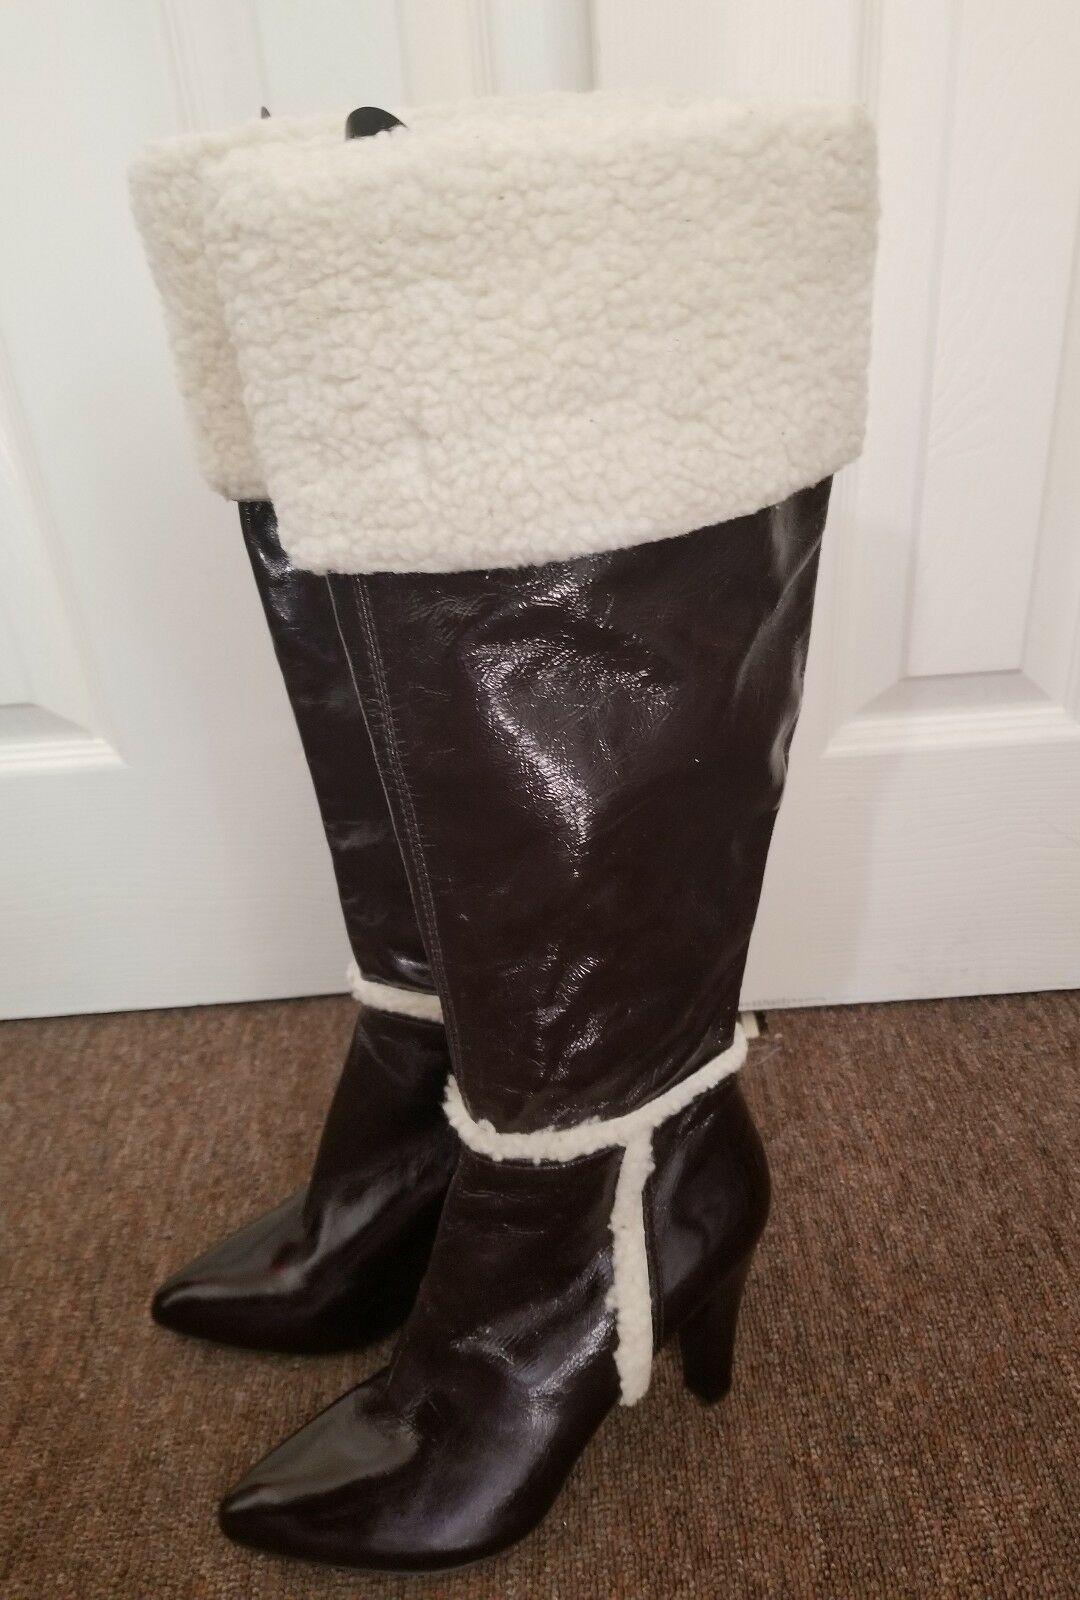 NEW NINE WEST ACCENTS DARK Marronee LEATHER FAUX FUR KNEE HIGH stivali SZ 8.5 M